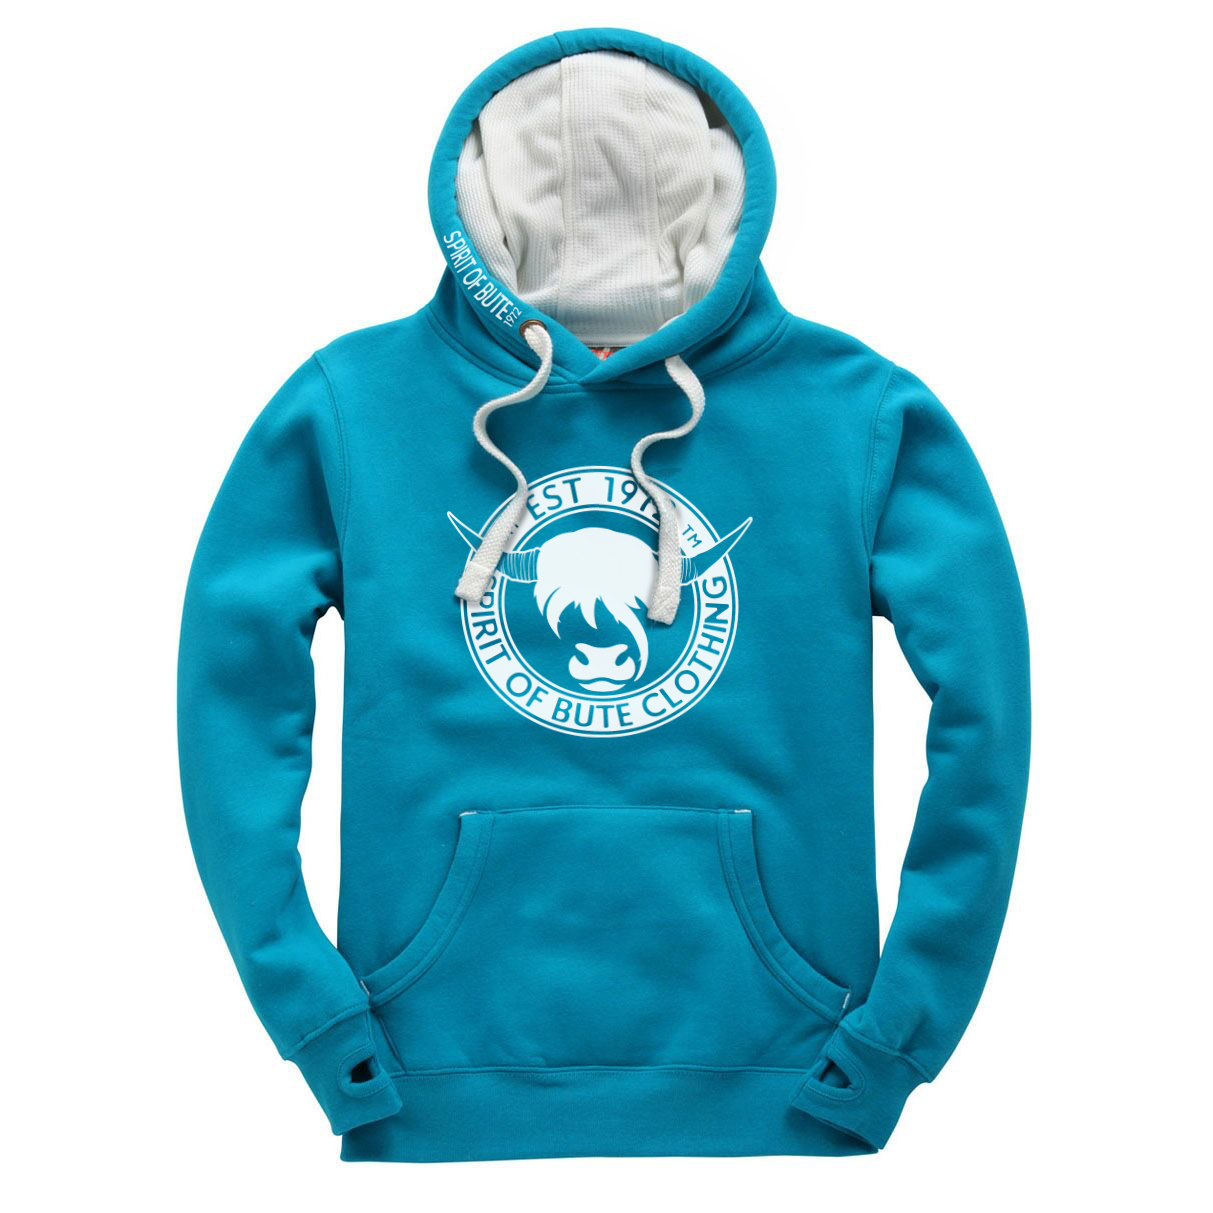 Spirit of Bute Clothing Hoodie (Caribbean Blue)